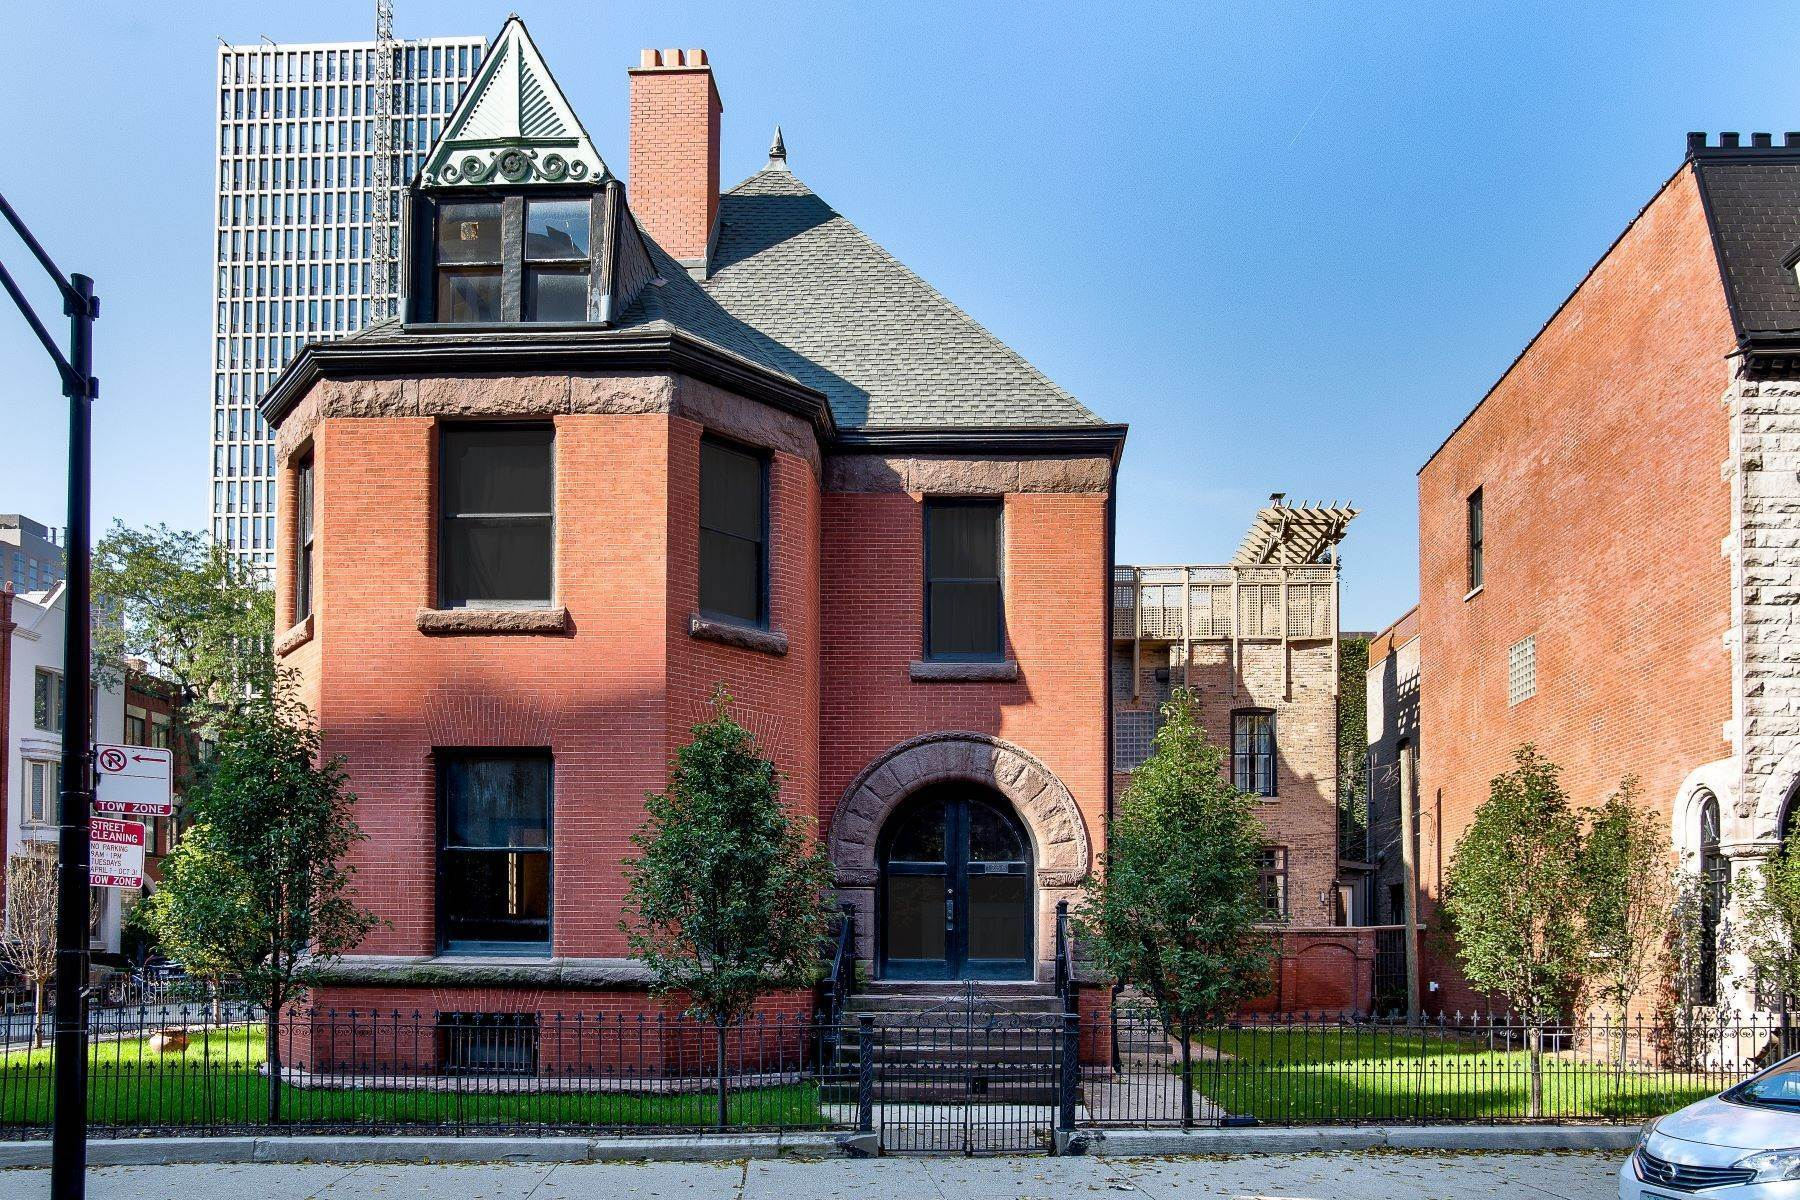 Single Family Homes for Sale at Historic Gem in the Heart of the Gold Coast 1236 N Astor Street Chicago, Illinois 60610 United States